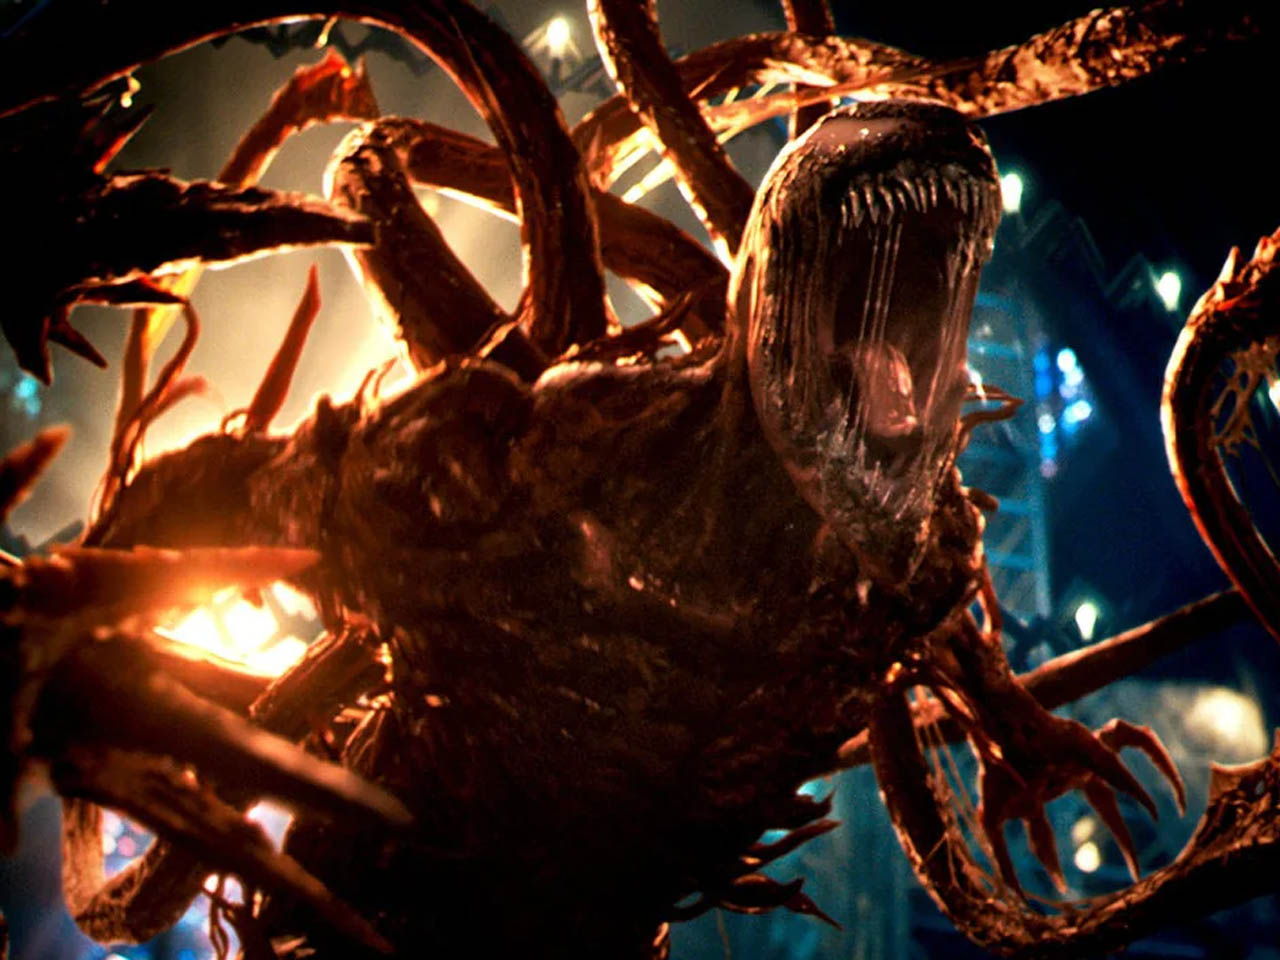 Venom Let There Be Carnage trailer - Here comes Carnage ...